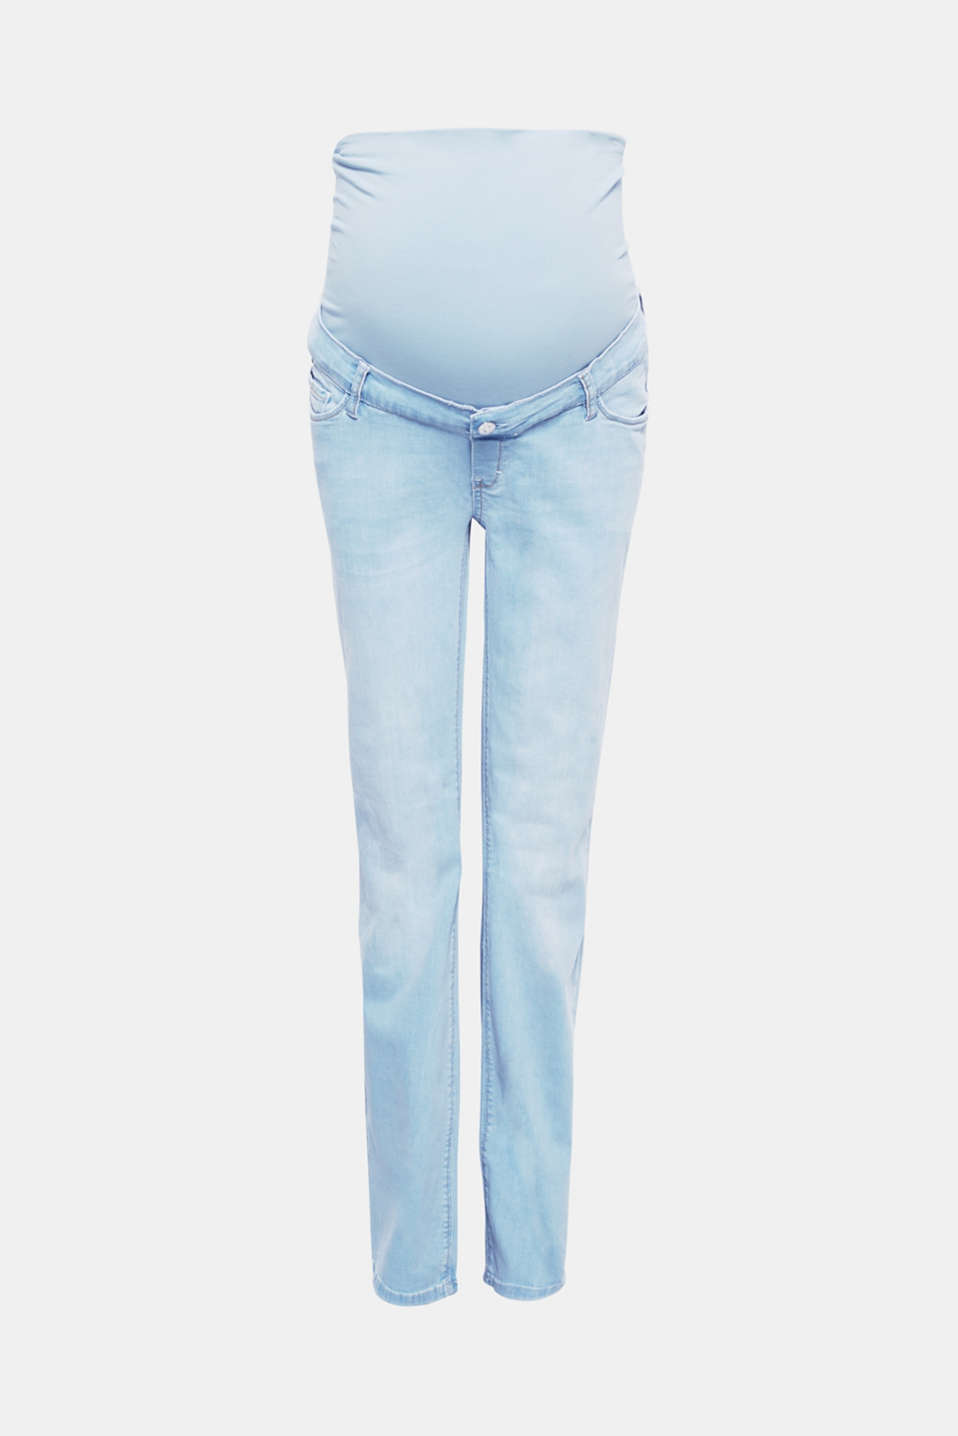 These stretch bootcut jeans in a pale wash have a lush, laid-back Seventies vibe.